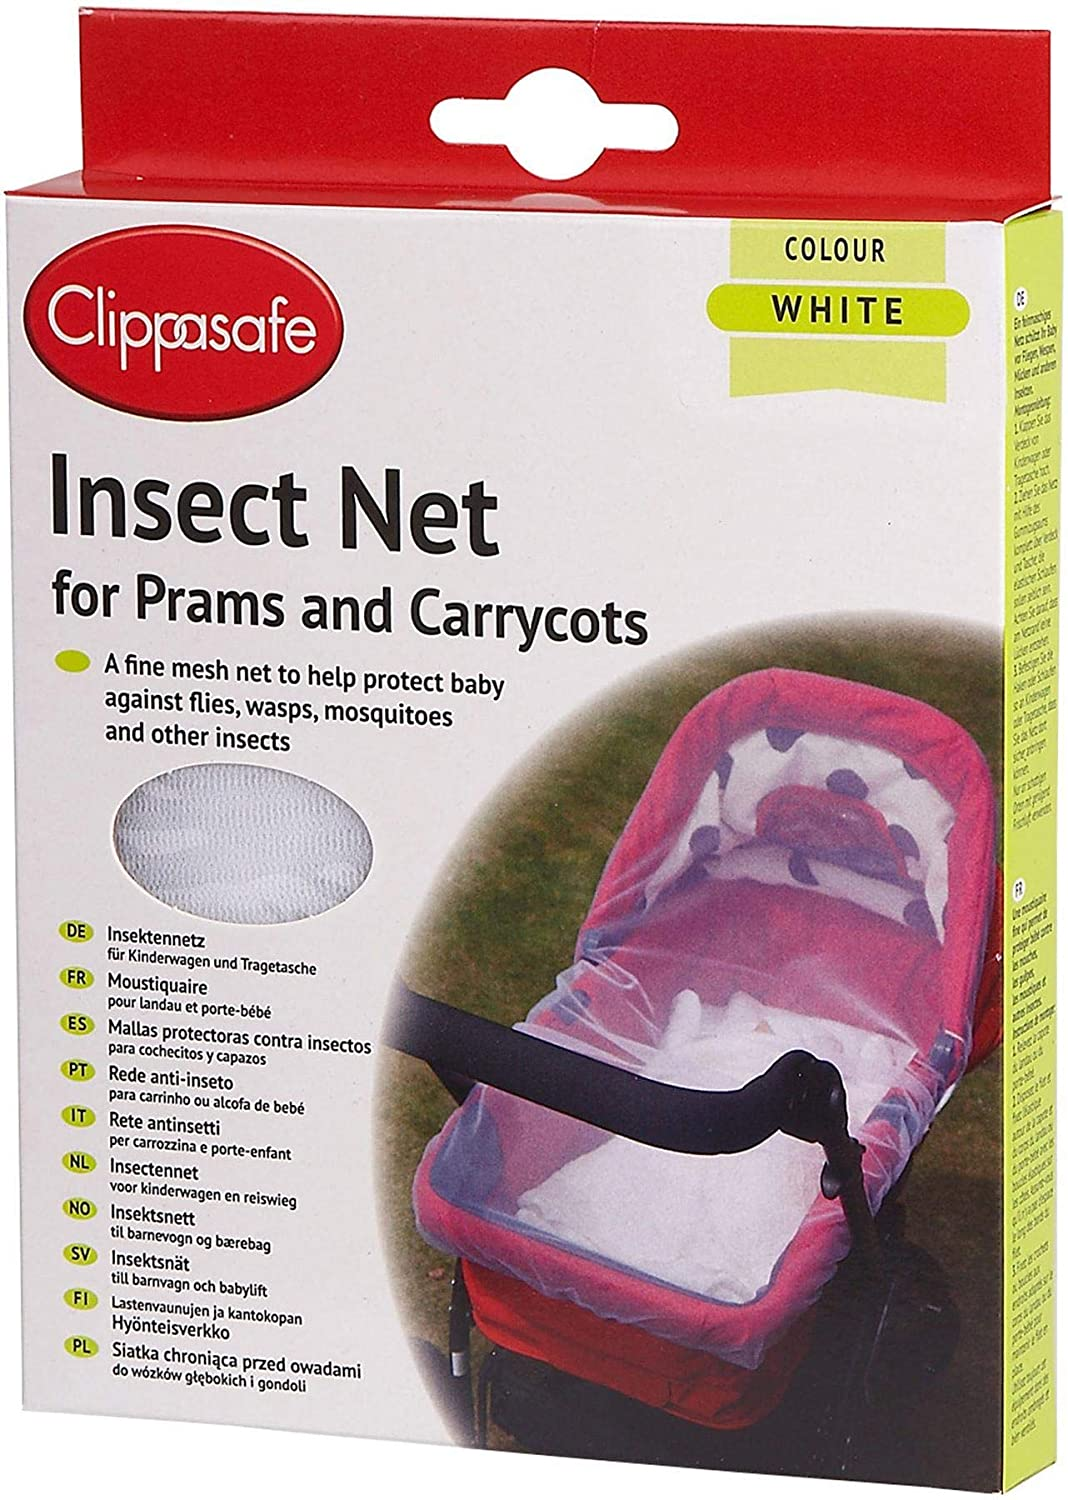 Amazon.com : Clippasafe Pram & Carrycot Insect Net - White ...